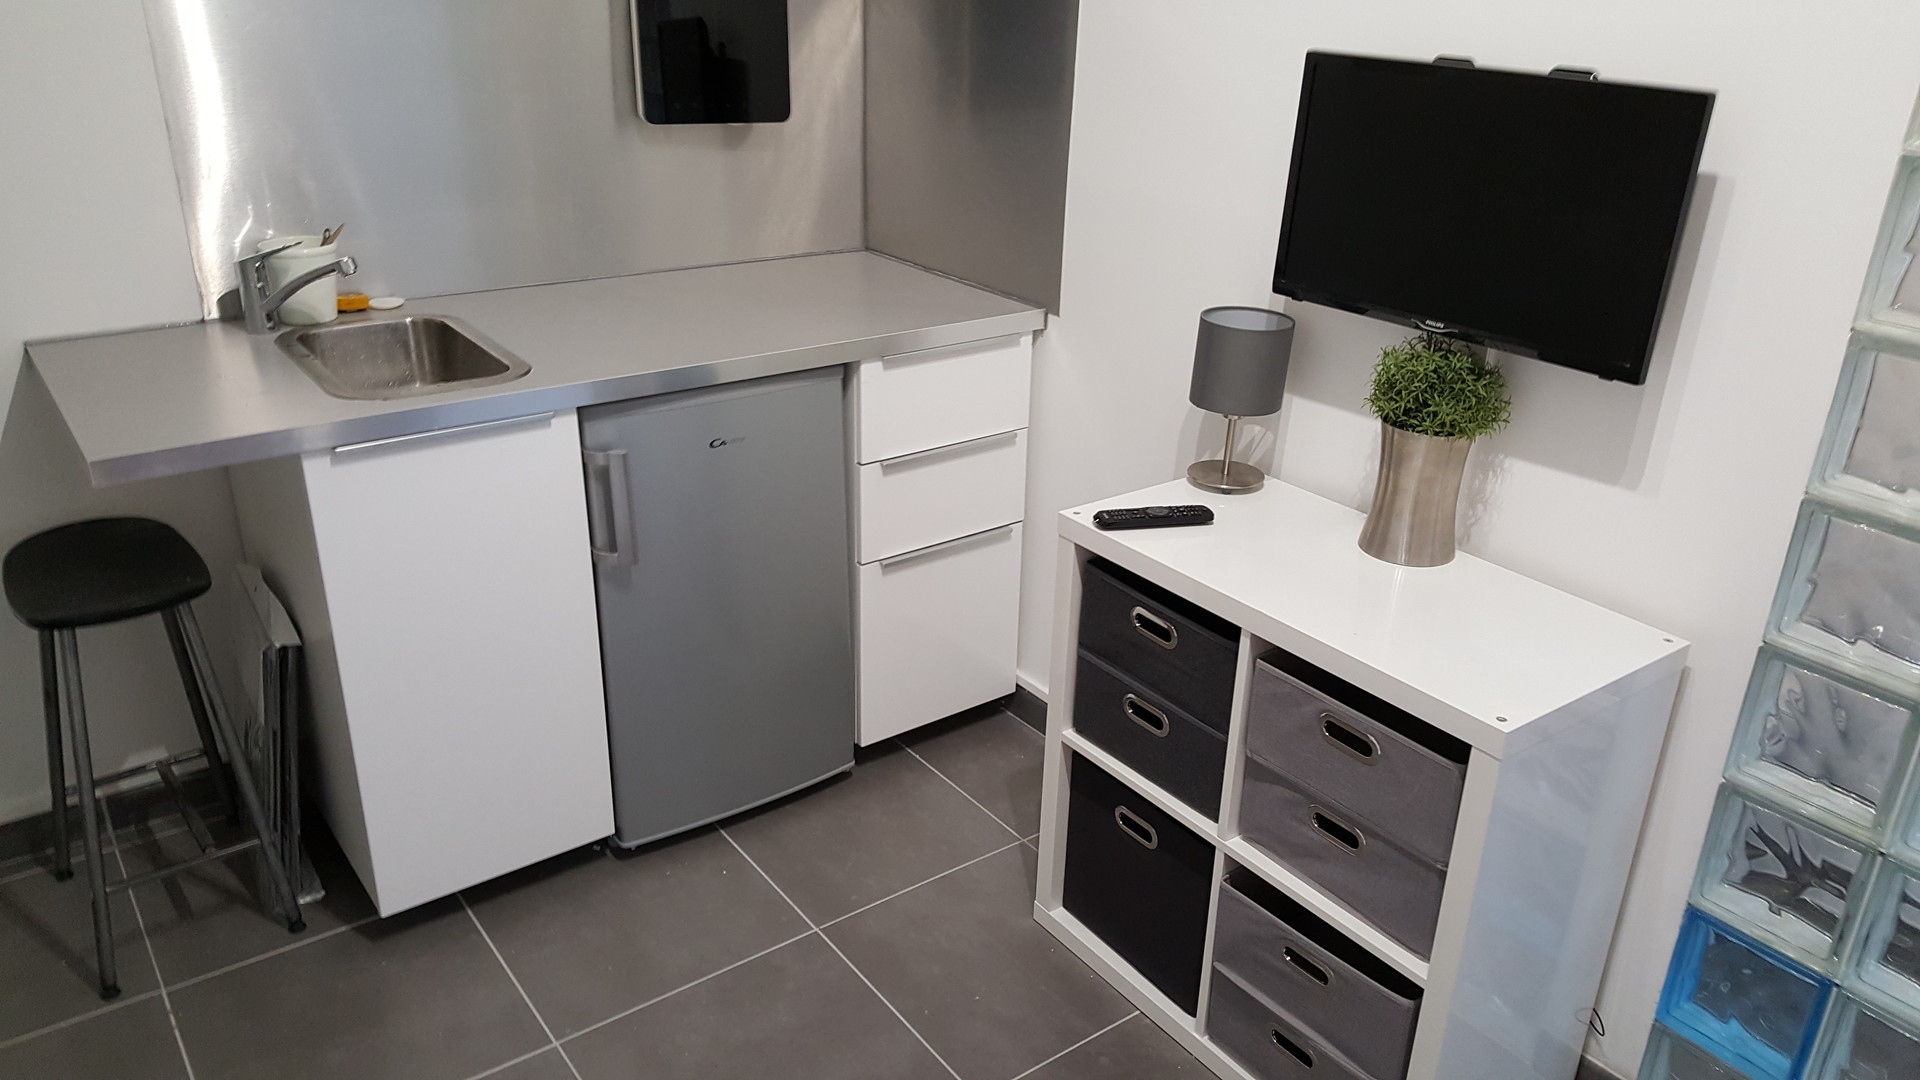 Studio To Rent For Students In Marseille With Elevator